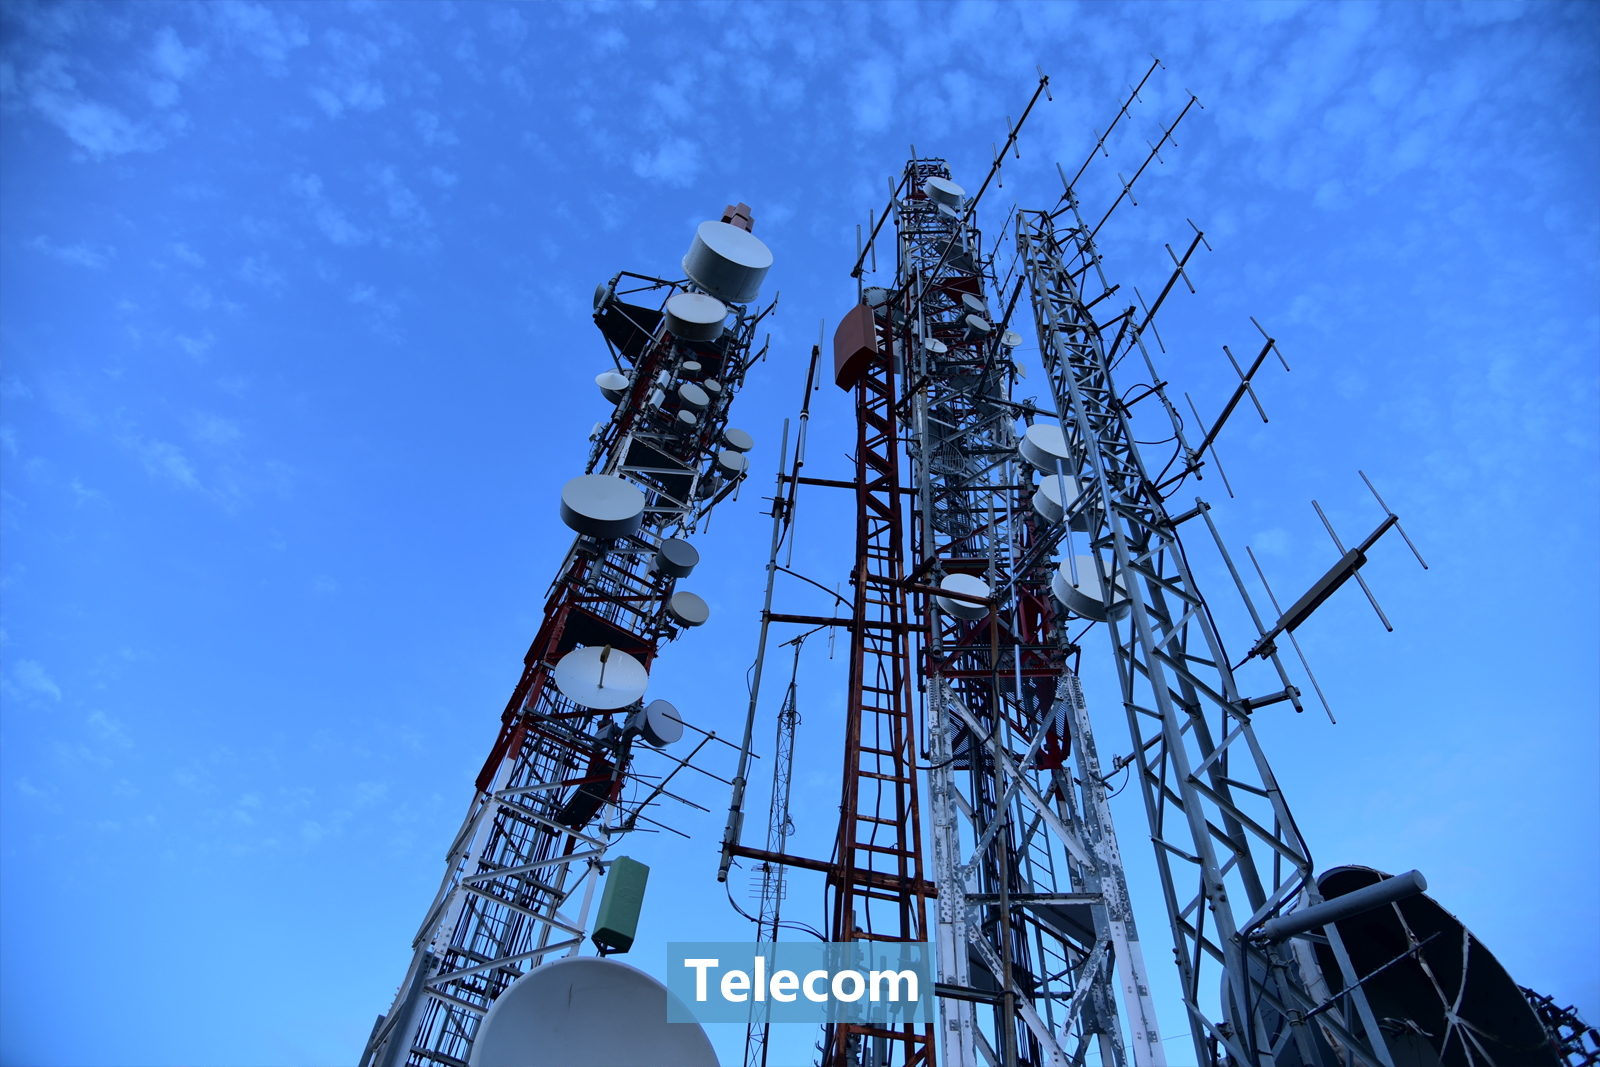 Telecom Applications Manufacturing